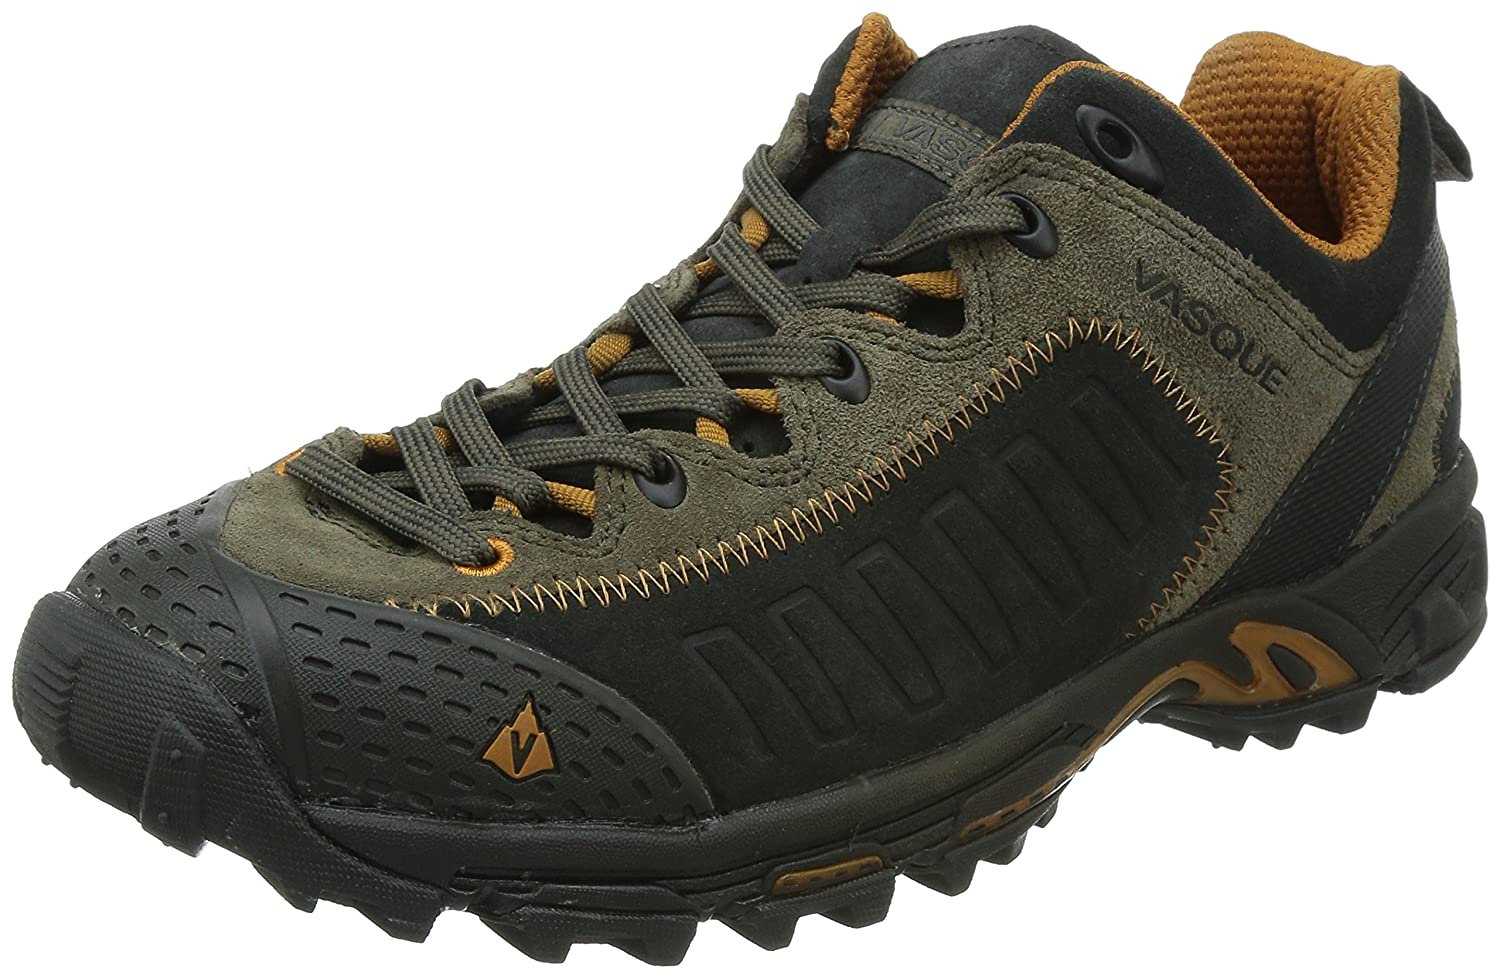 Vasque メンズ Vasque B002NPCTHW 11.5 mens_us|Peat/Sudan Brown Peat/Sudan Brown 11.5 mens_us